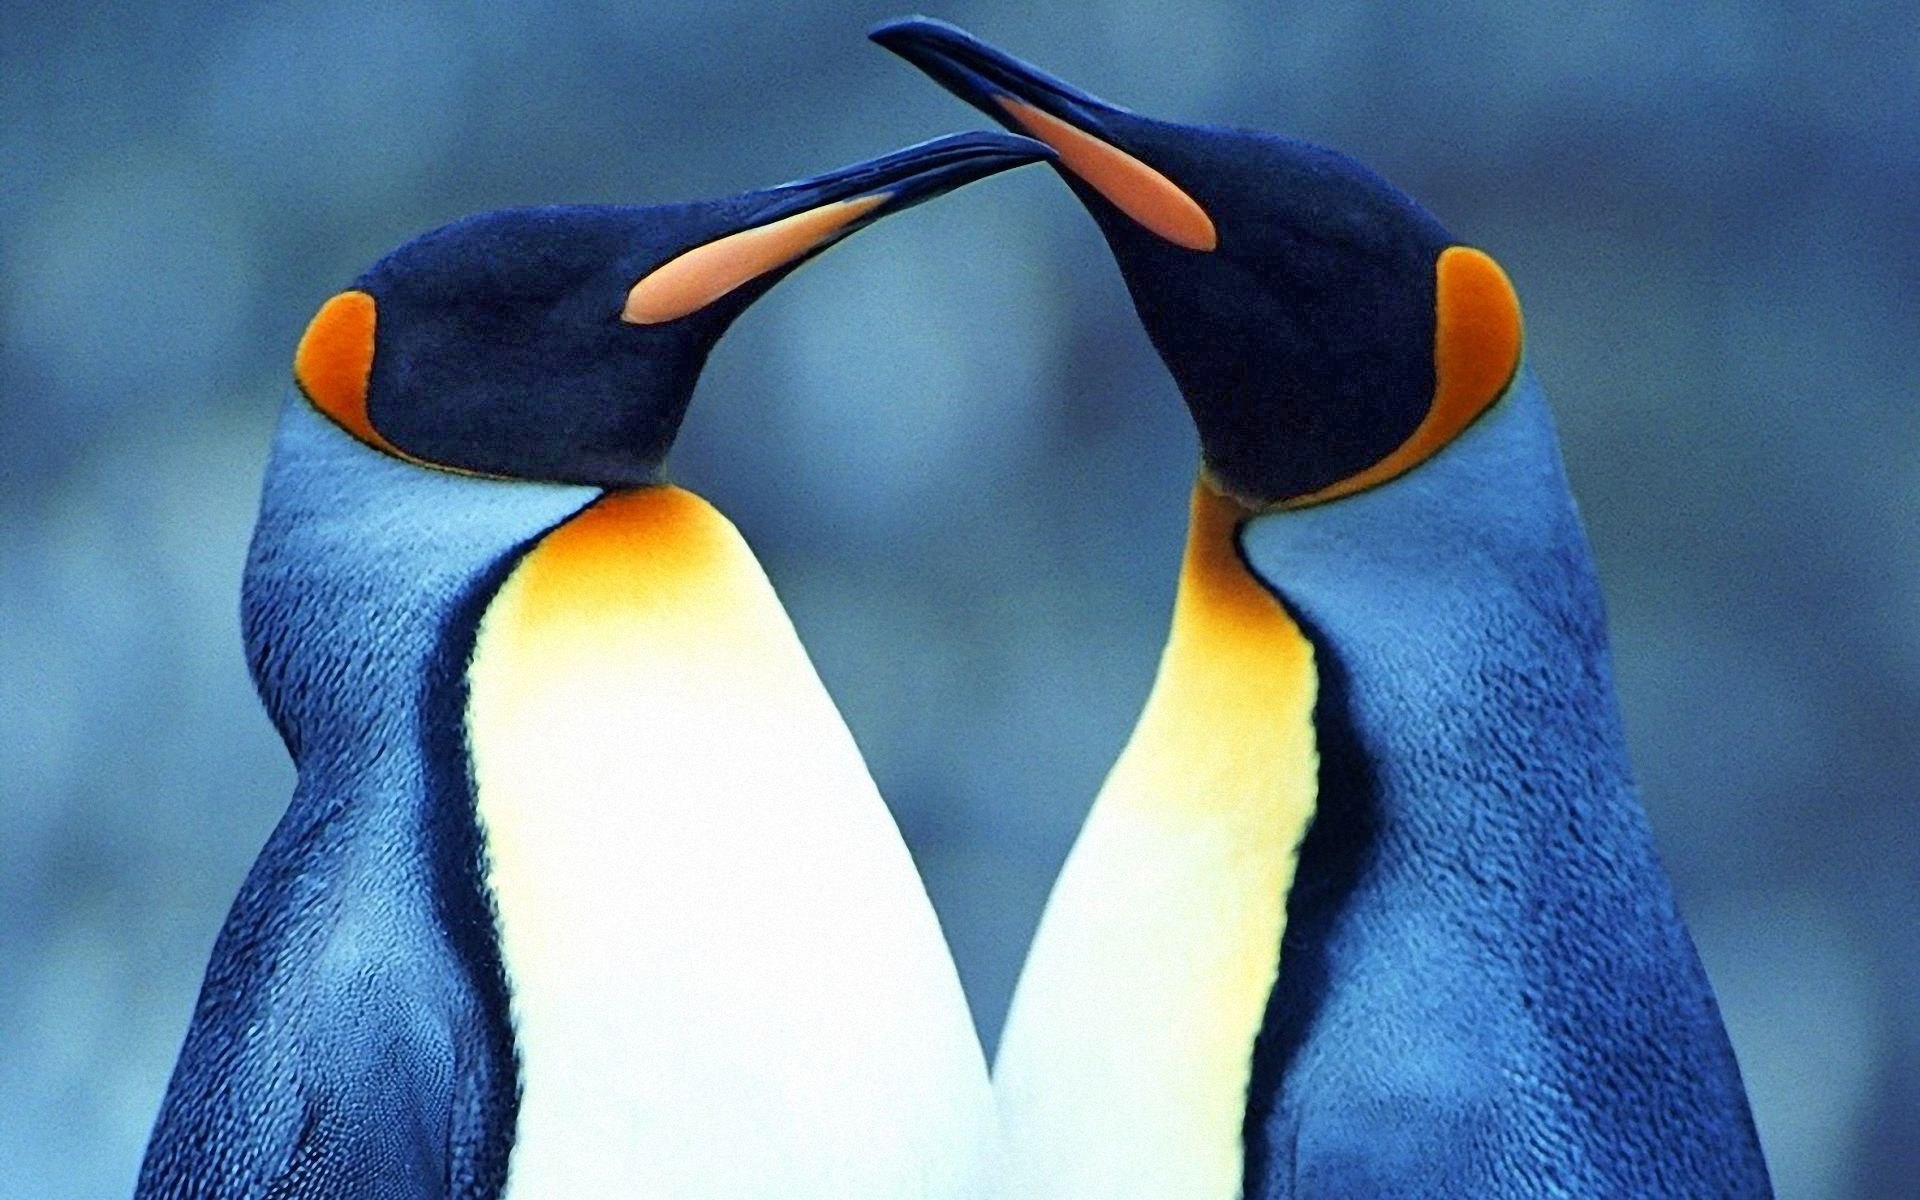 Penguin Love HD Wallpaper Background Image 1920x1200 ID 1920x1200